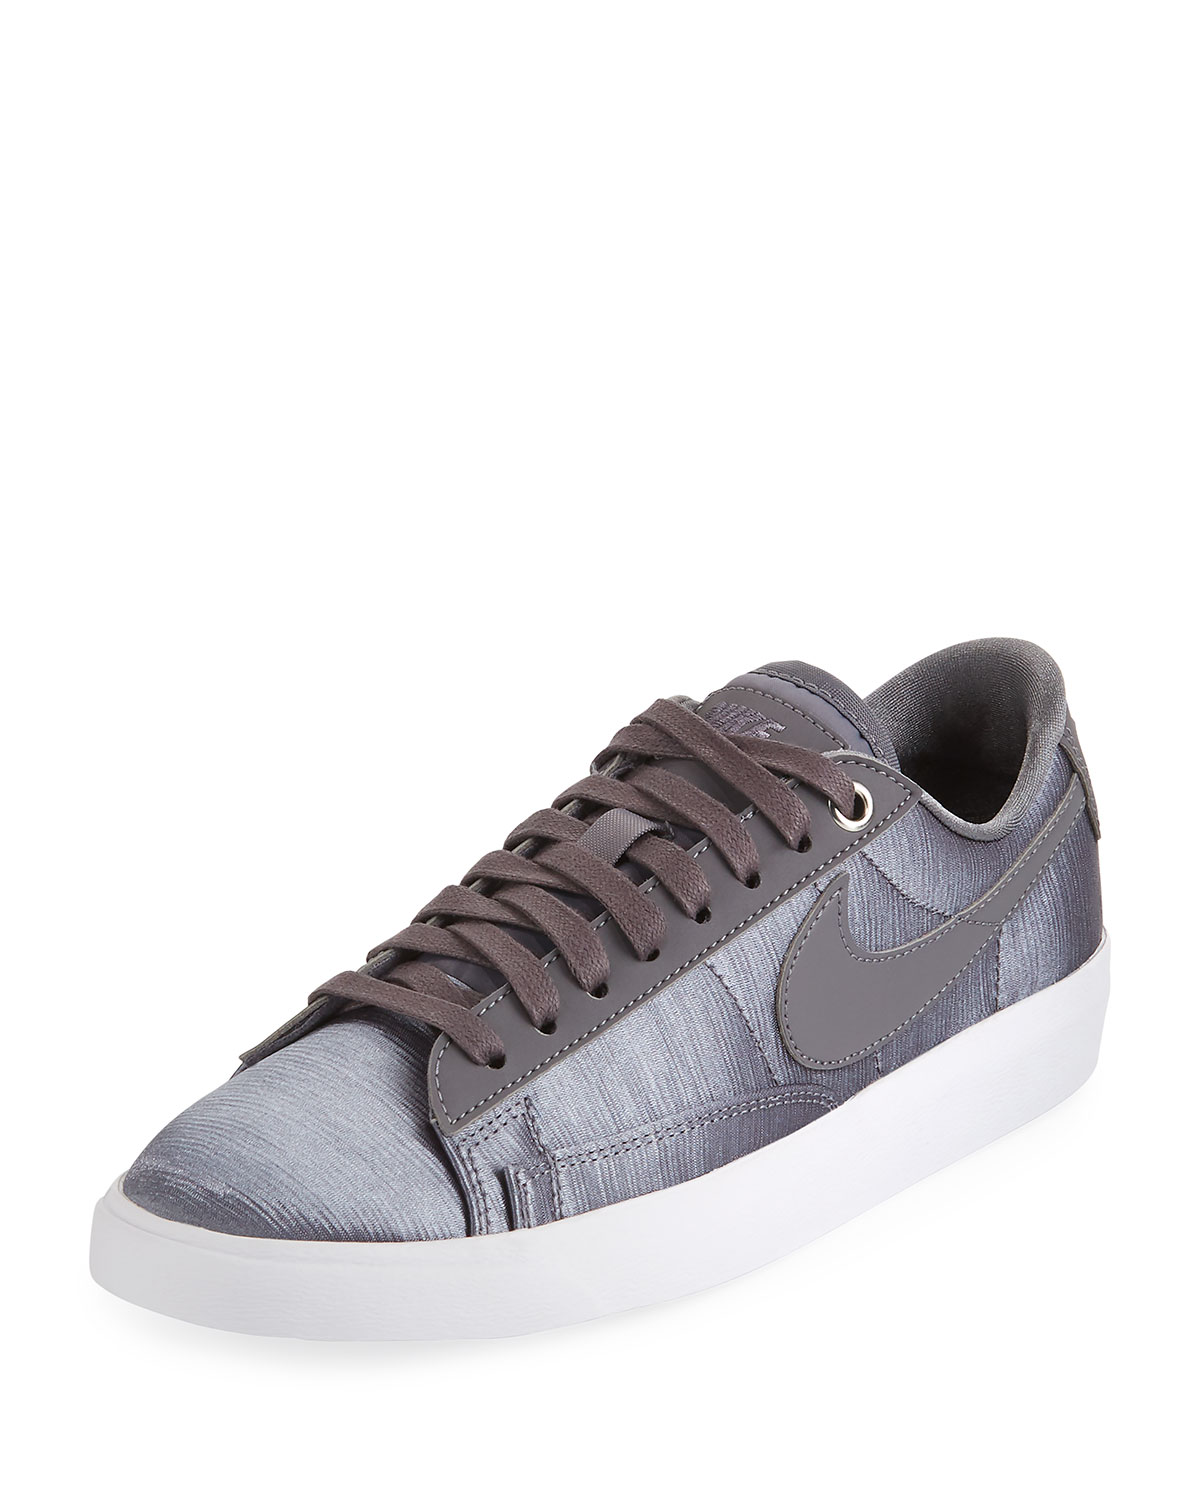 348a2a5d507f Nike Women s Blazer Leather Low-Top Sneakers